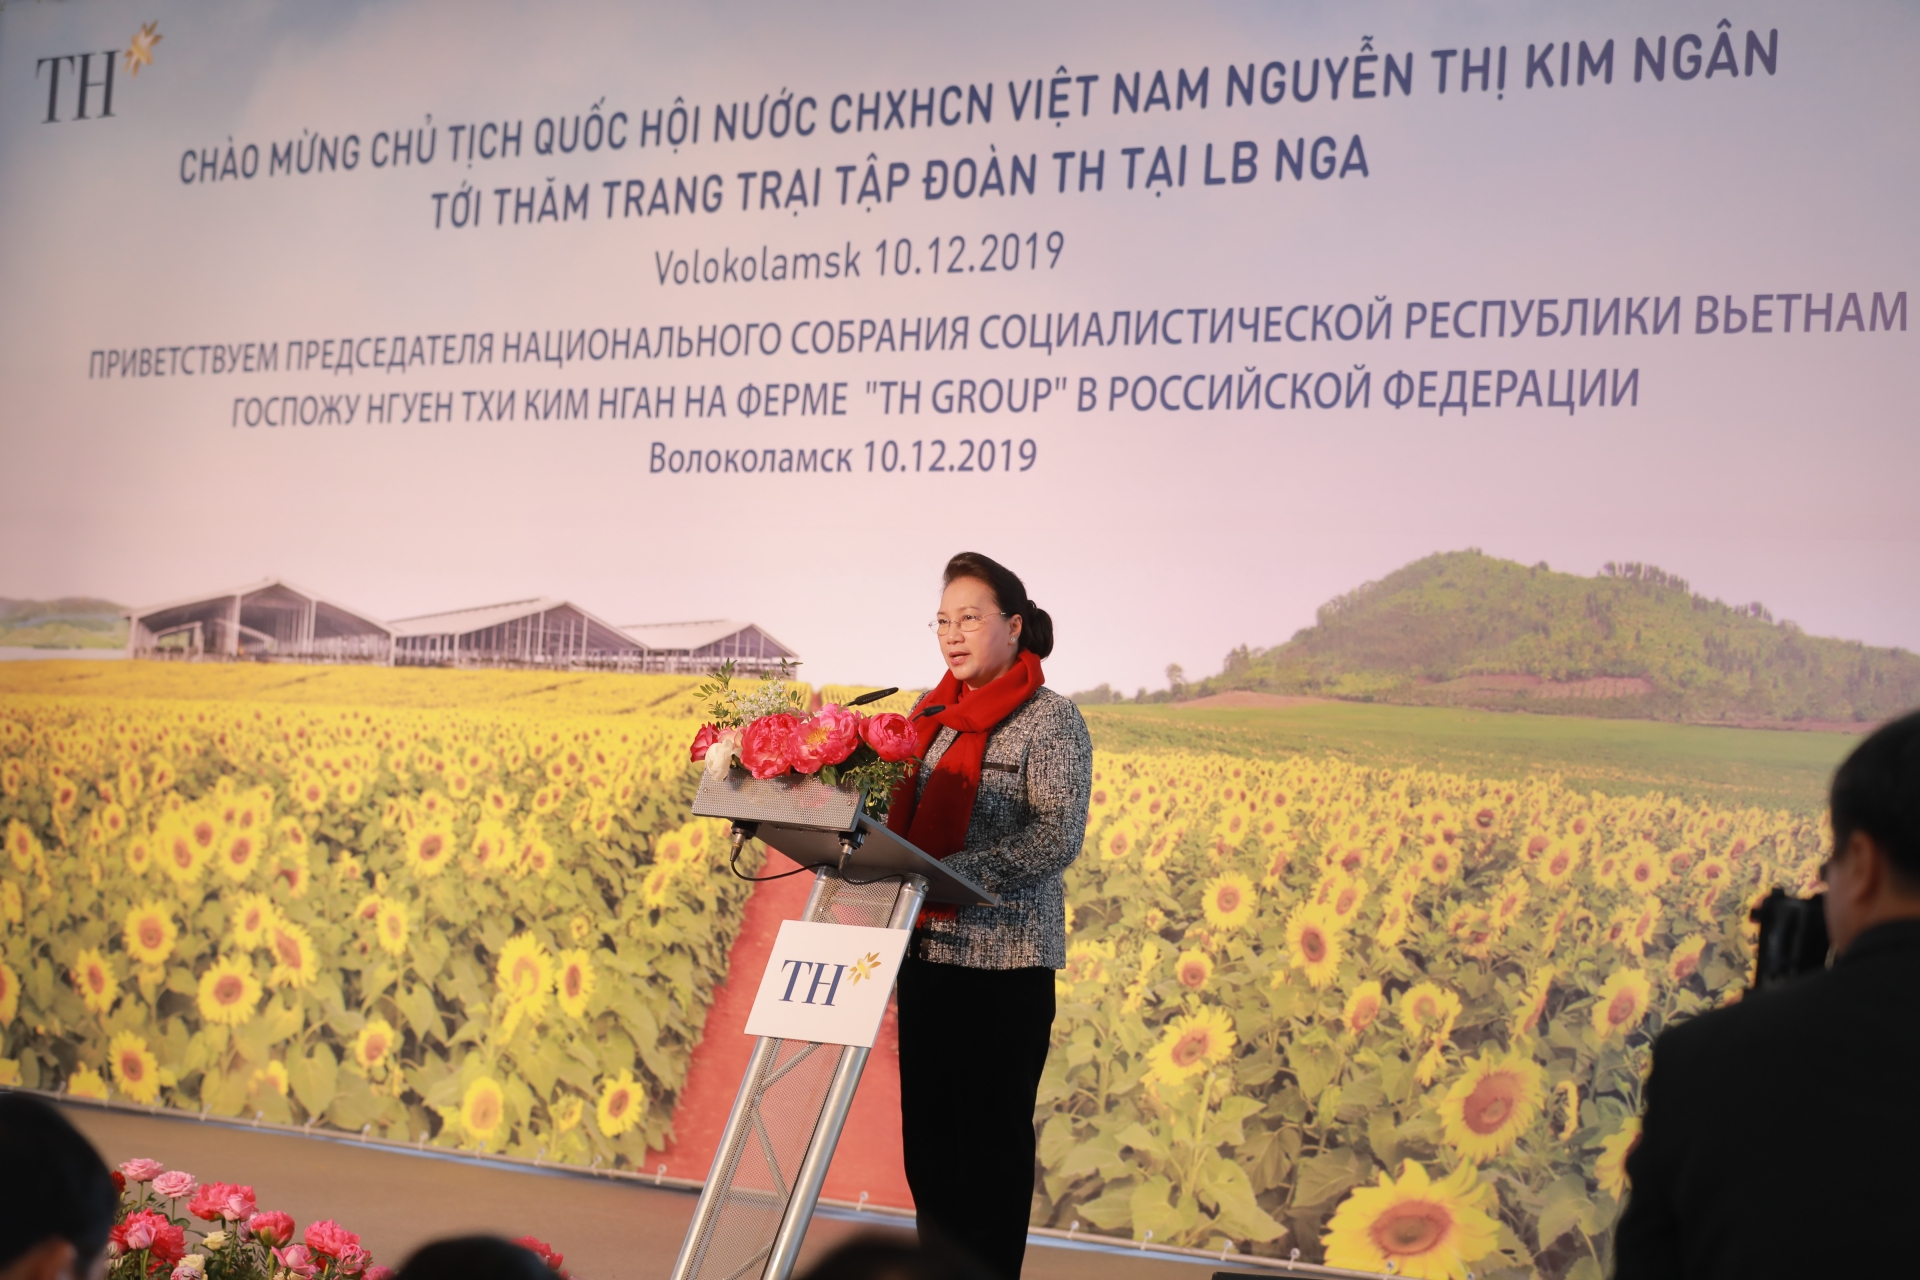 National Assembly leader visits TH Group's project in Russia